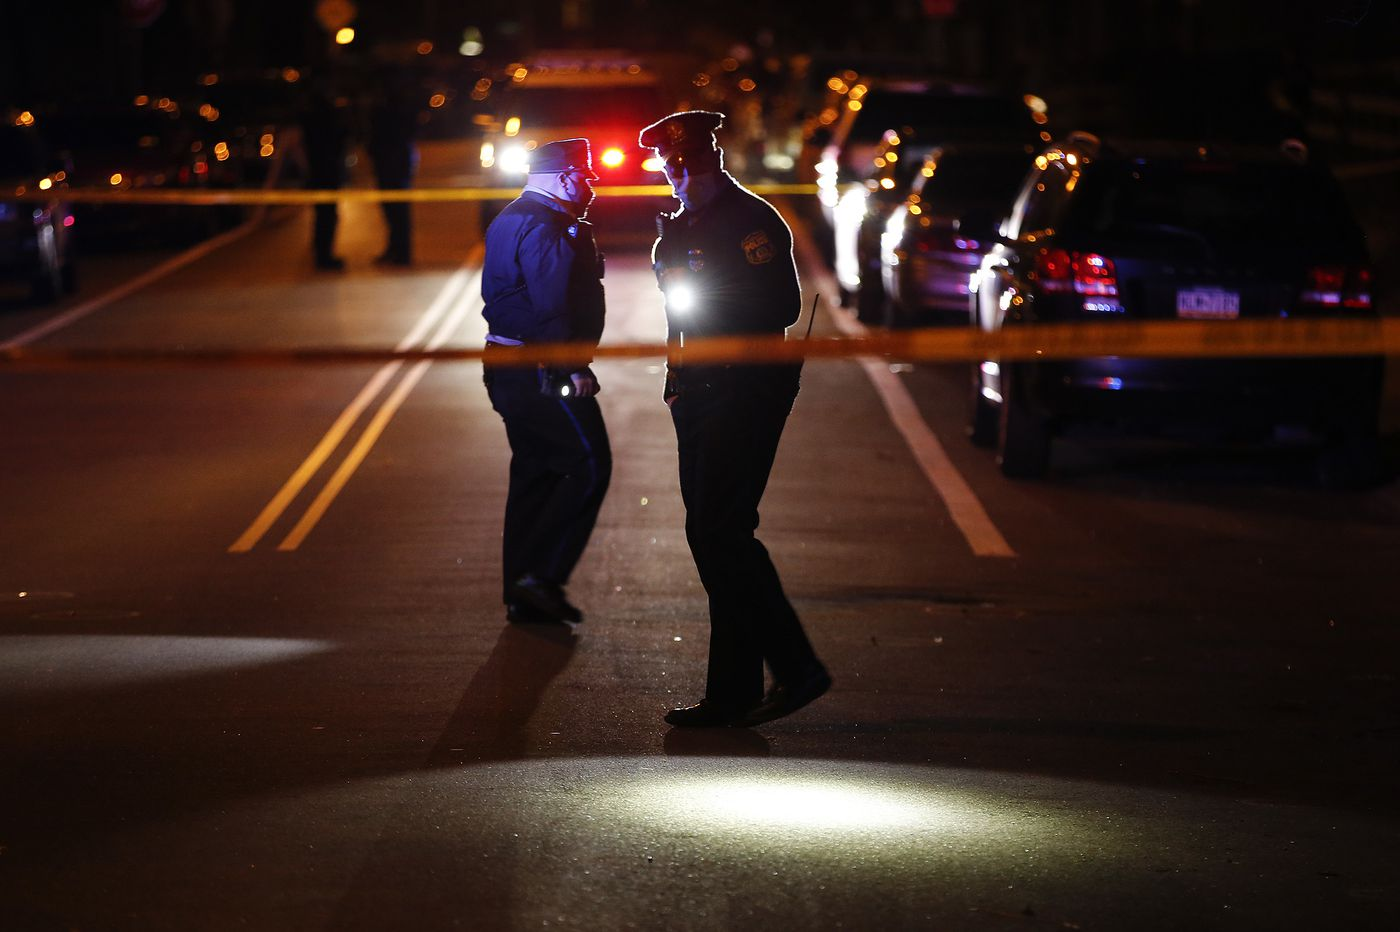 Philadelphia starts the new year with three homicides overnight